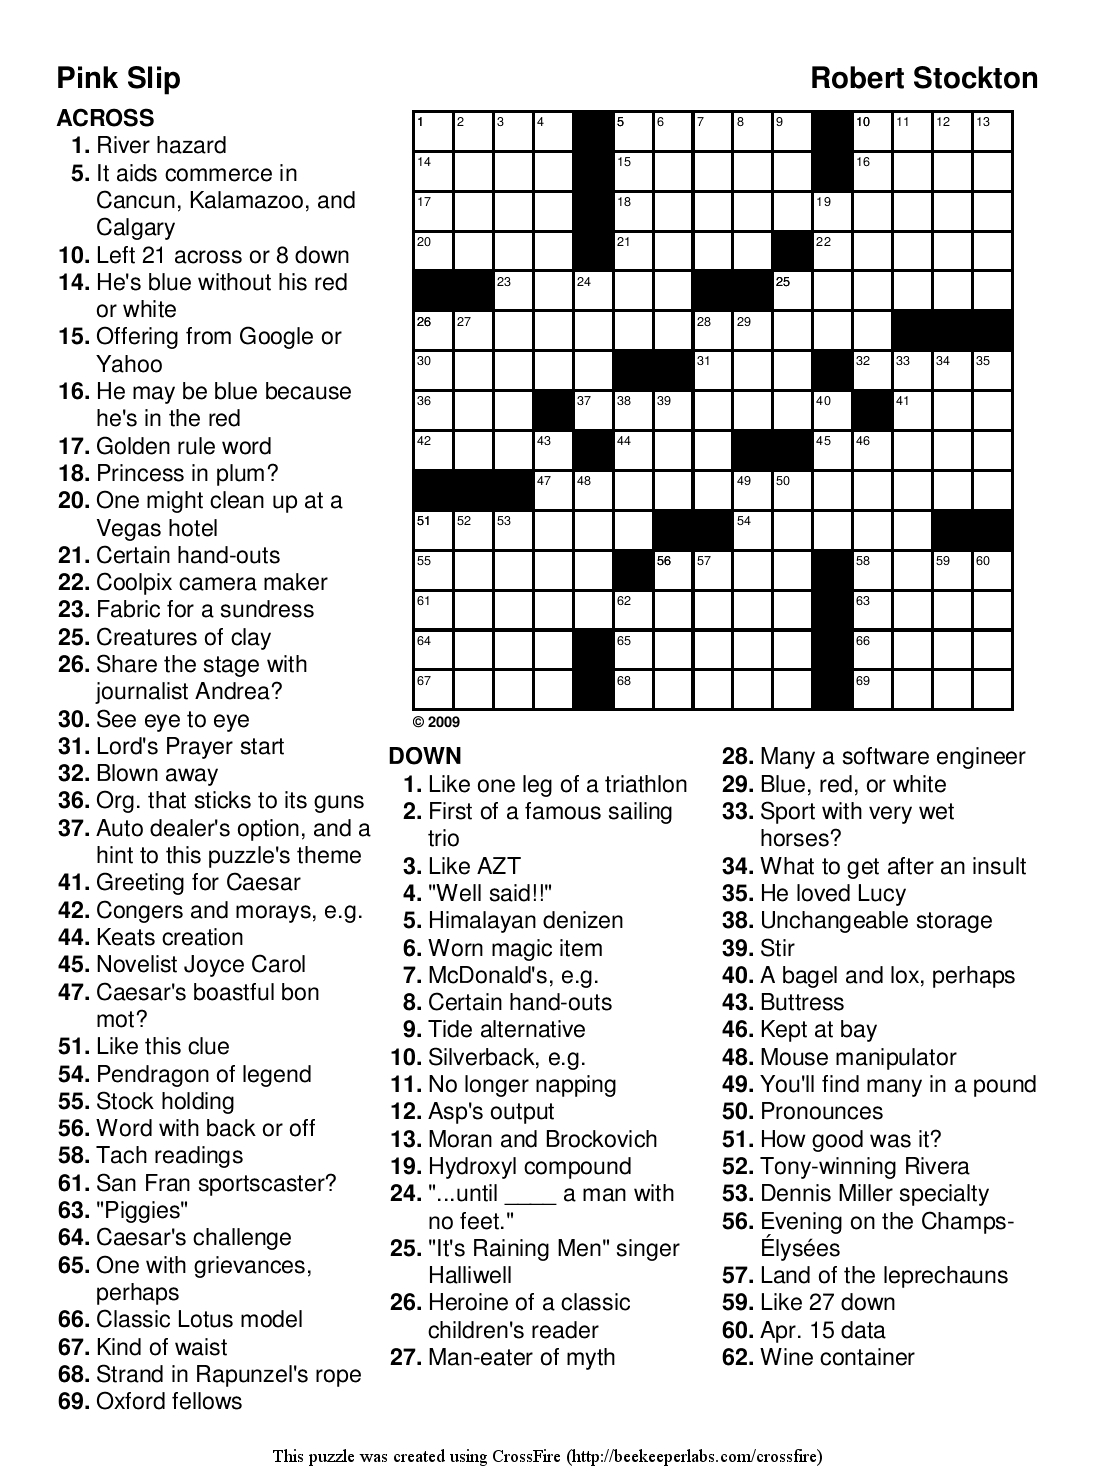 Printable Puzzles For Adults | Easy Word Puzzles Printable Festivals - Christmas Printable Crossword Puzzles Adults